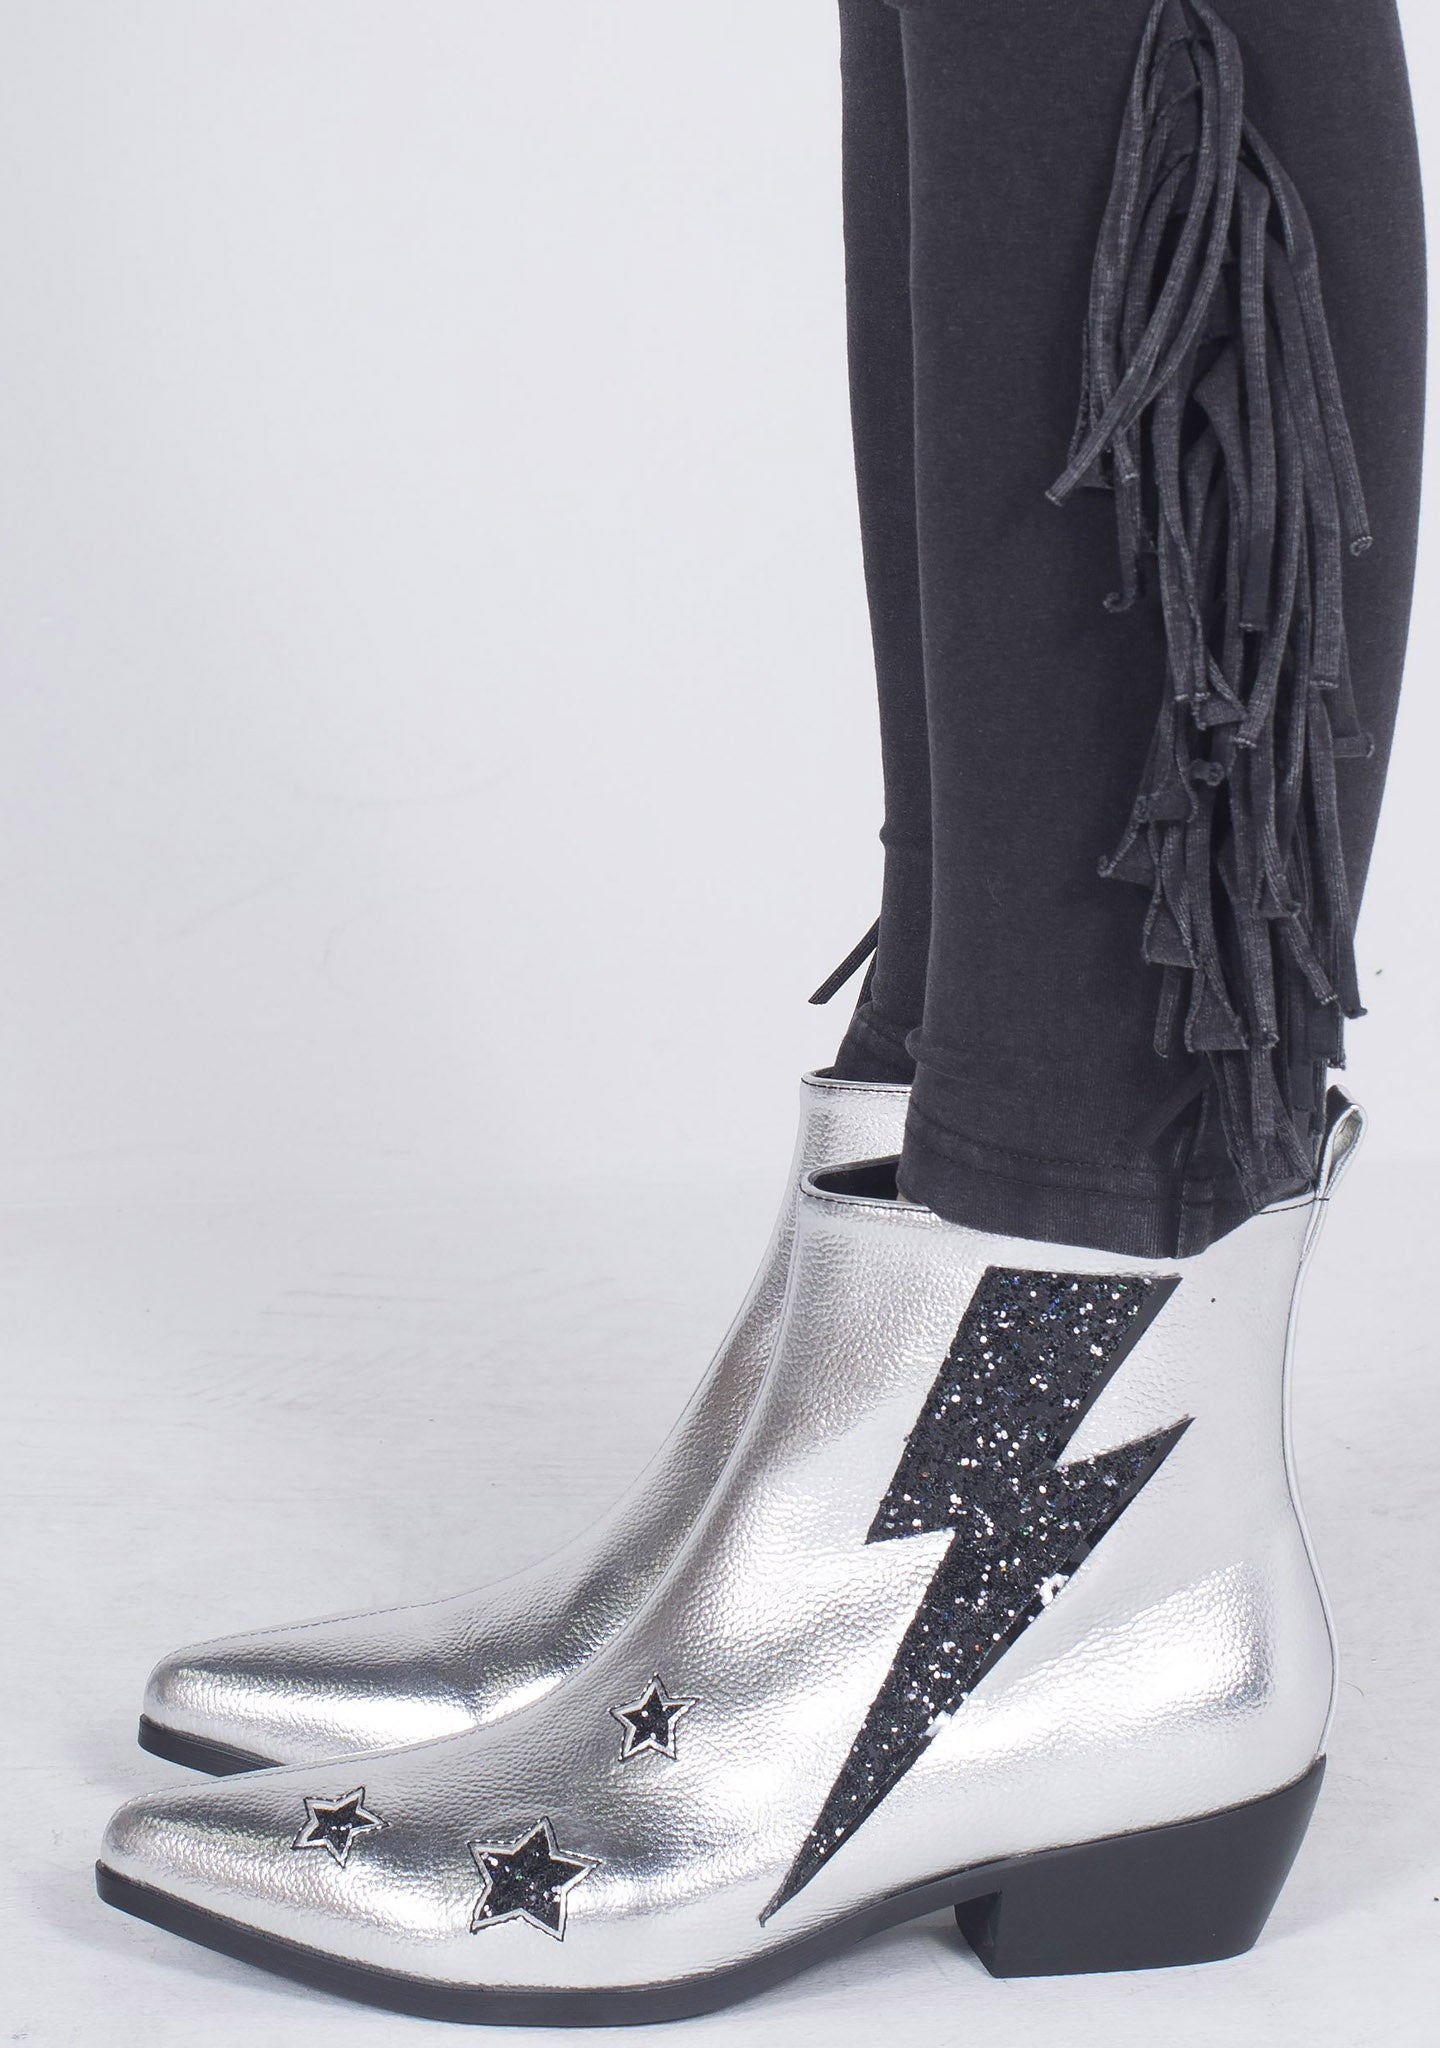 Y.R.U. Laso Volt Ankle Boots in Silver